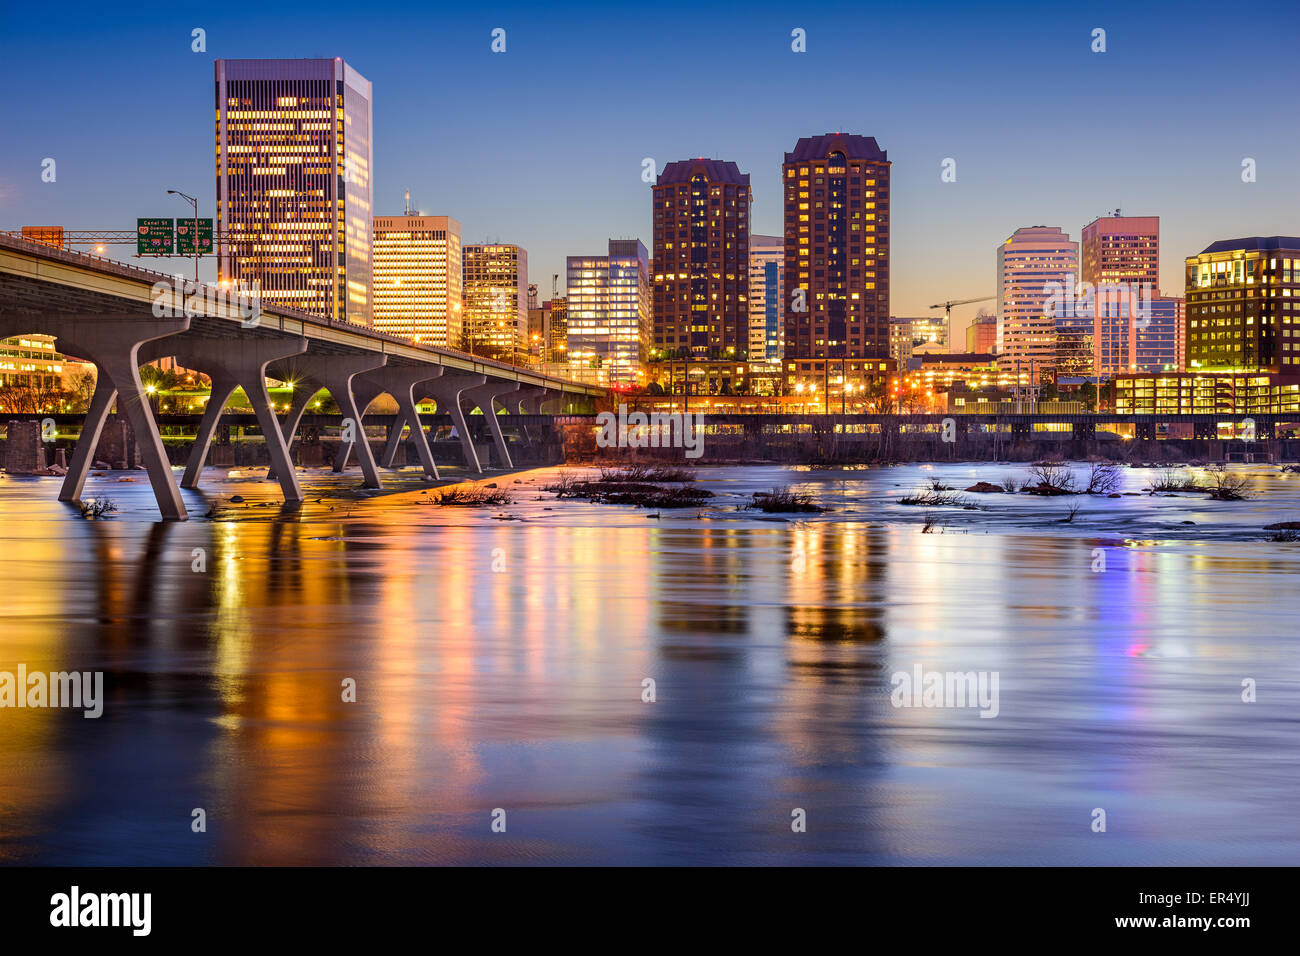 Richmond, Virginia, USA skyline on the James River. - Stock Image